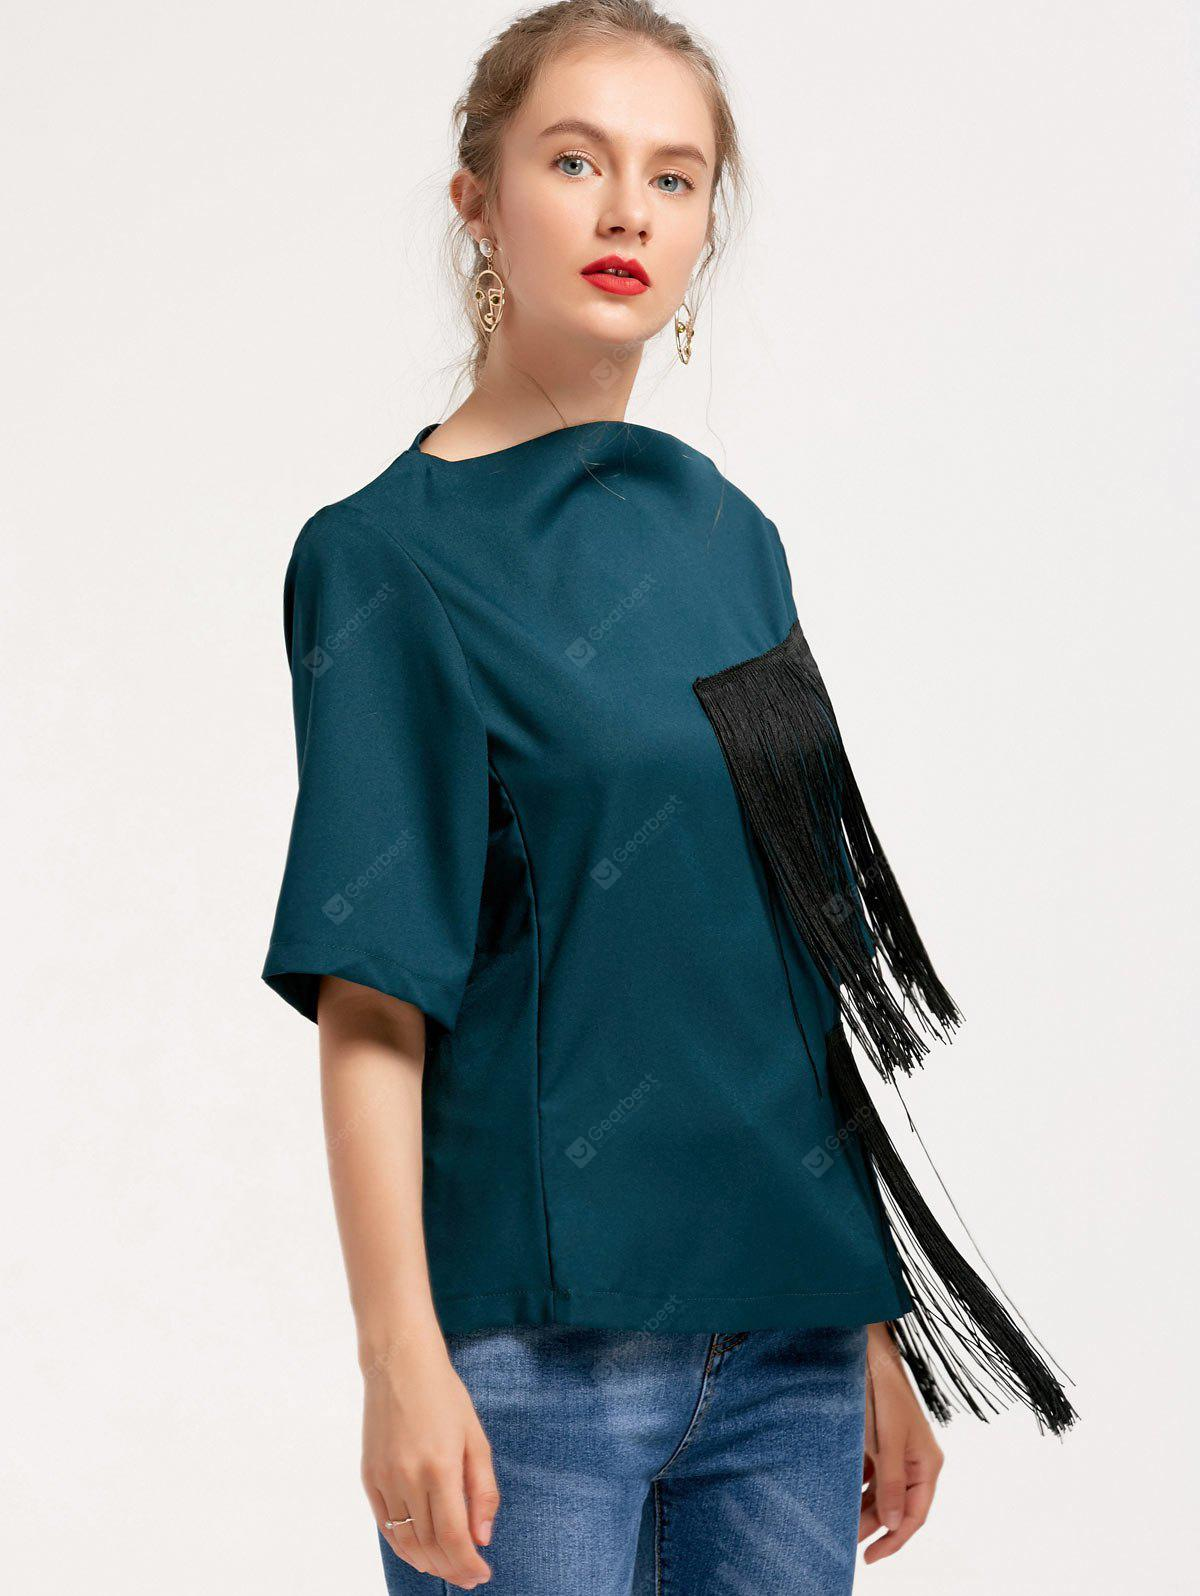 Asymmetrical Fringed Top